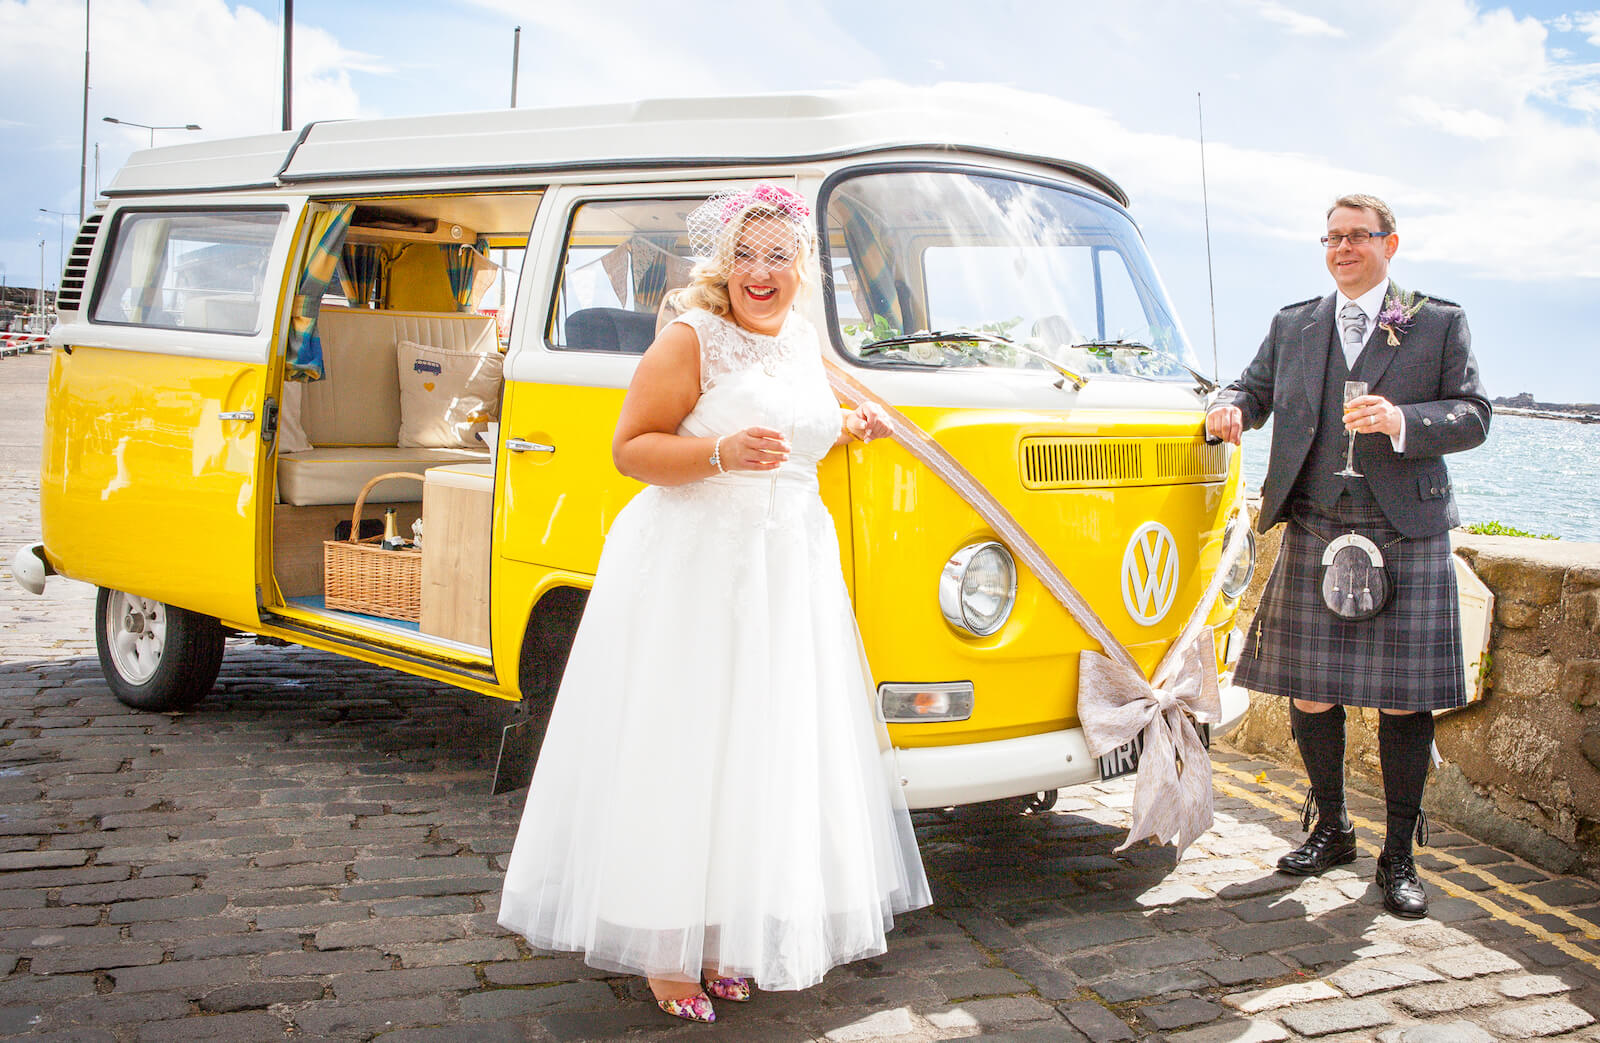 LITTLE MISS SUNSHINE   The yellow VW camper van. LHD with wedge shaped pop up roof. Available chauffeur driven as your wedding car. Seats 6 passengers, 1 driver.